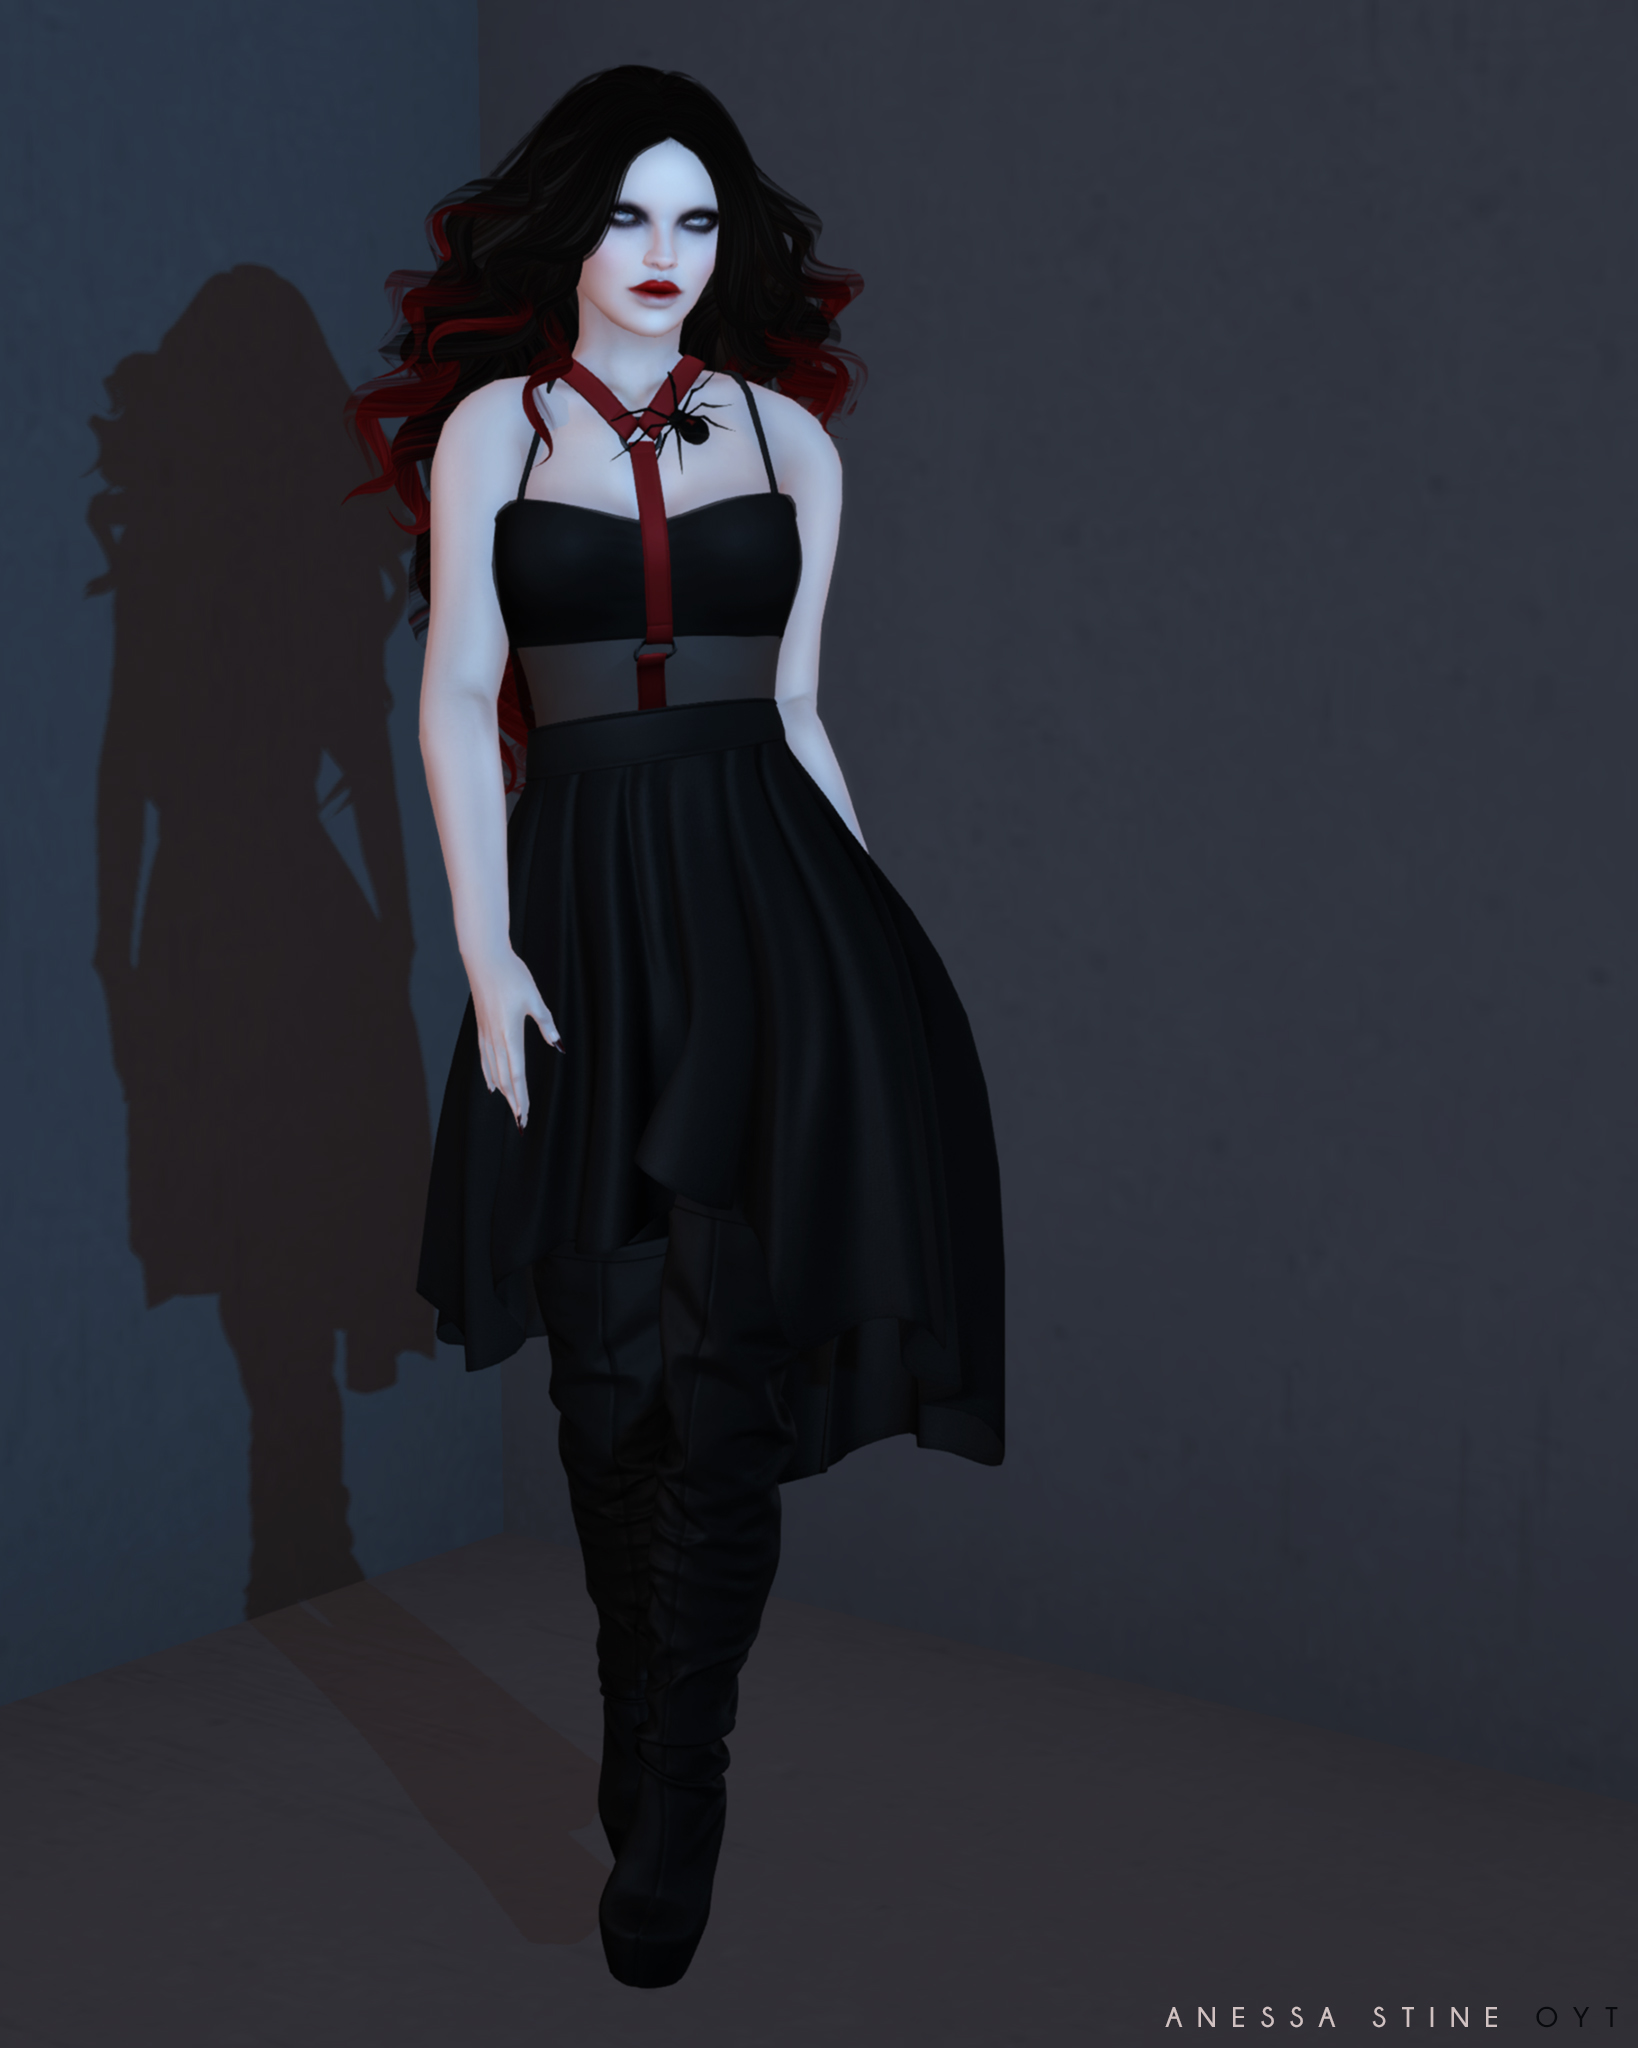 On Your Toes Blog: Black Widow